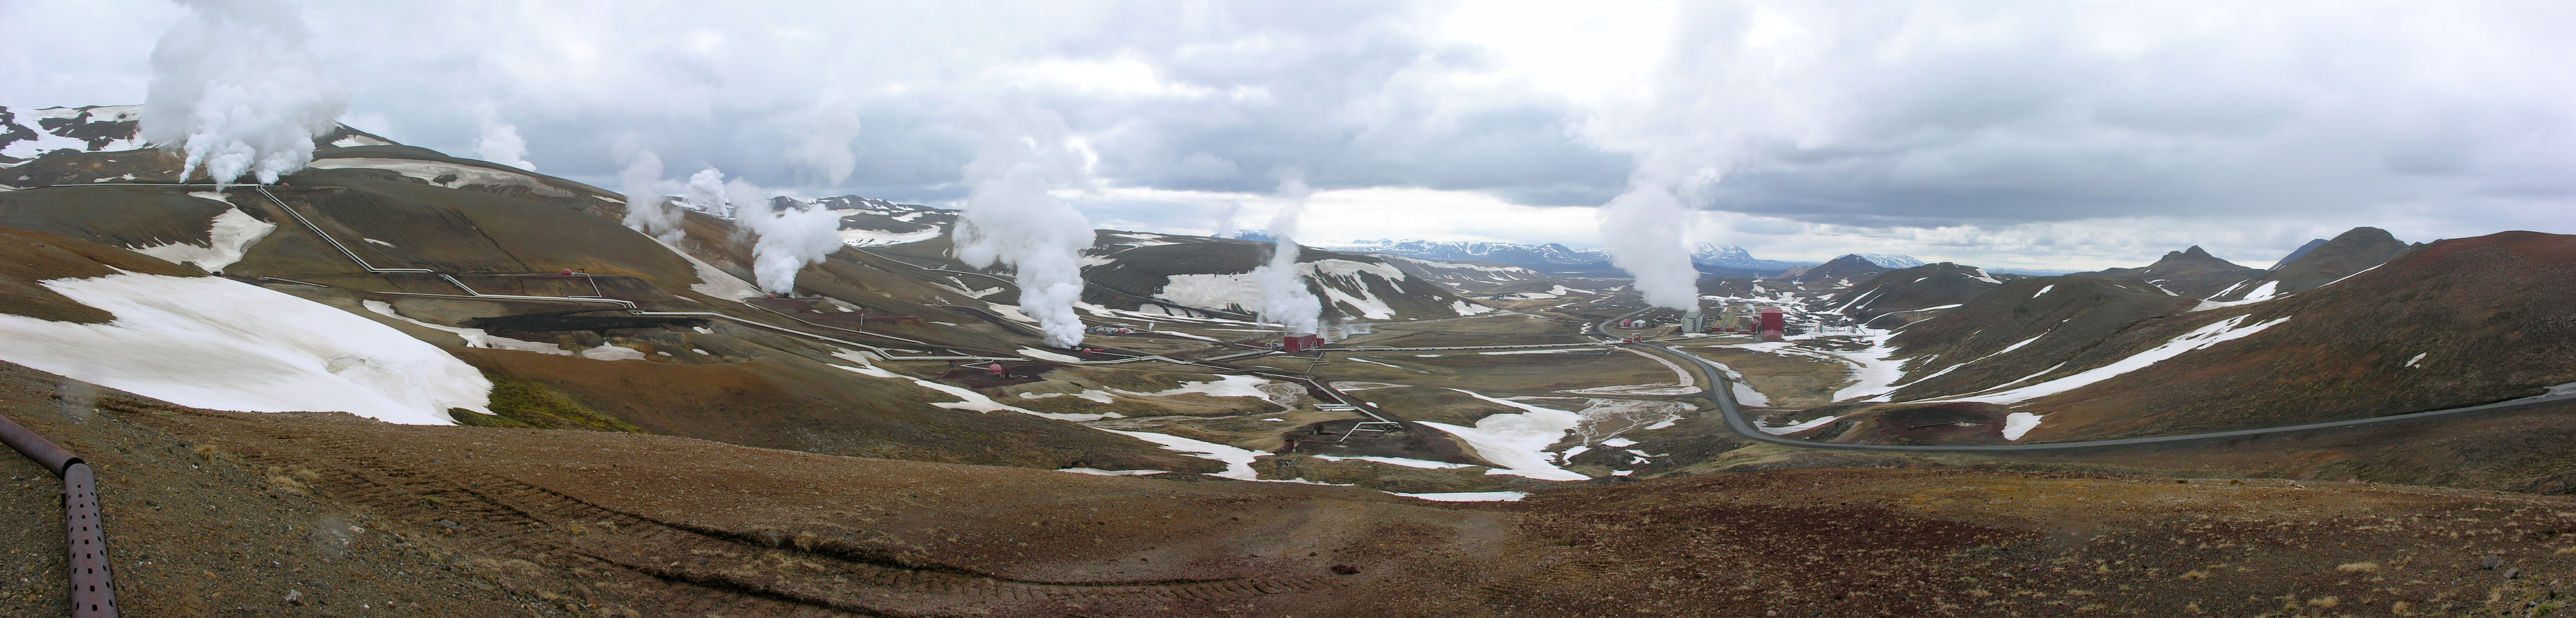 BBN73EnergyProduction - Geothermal Power